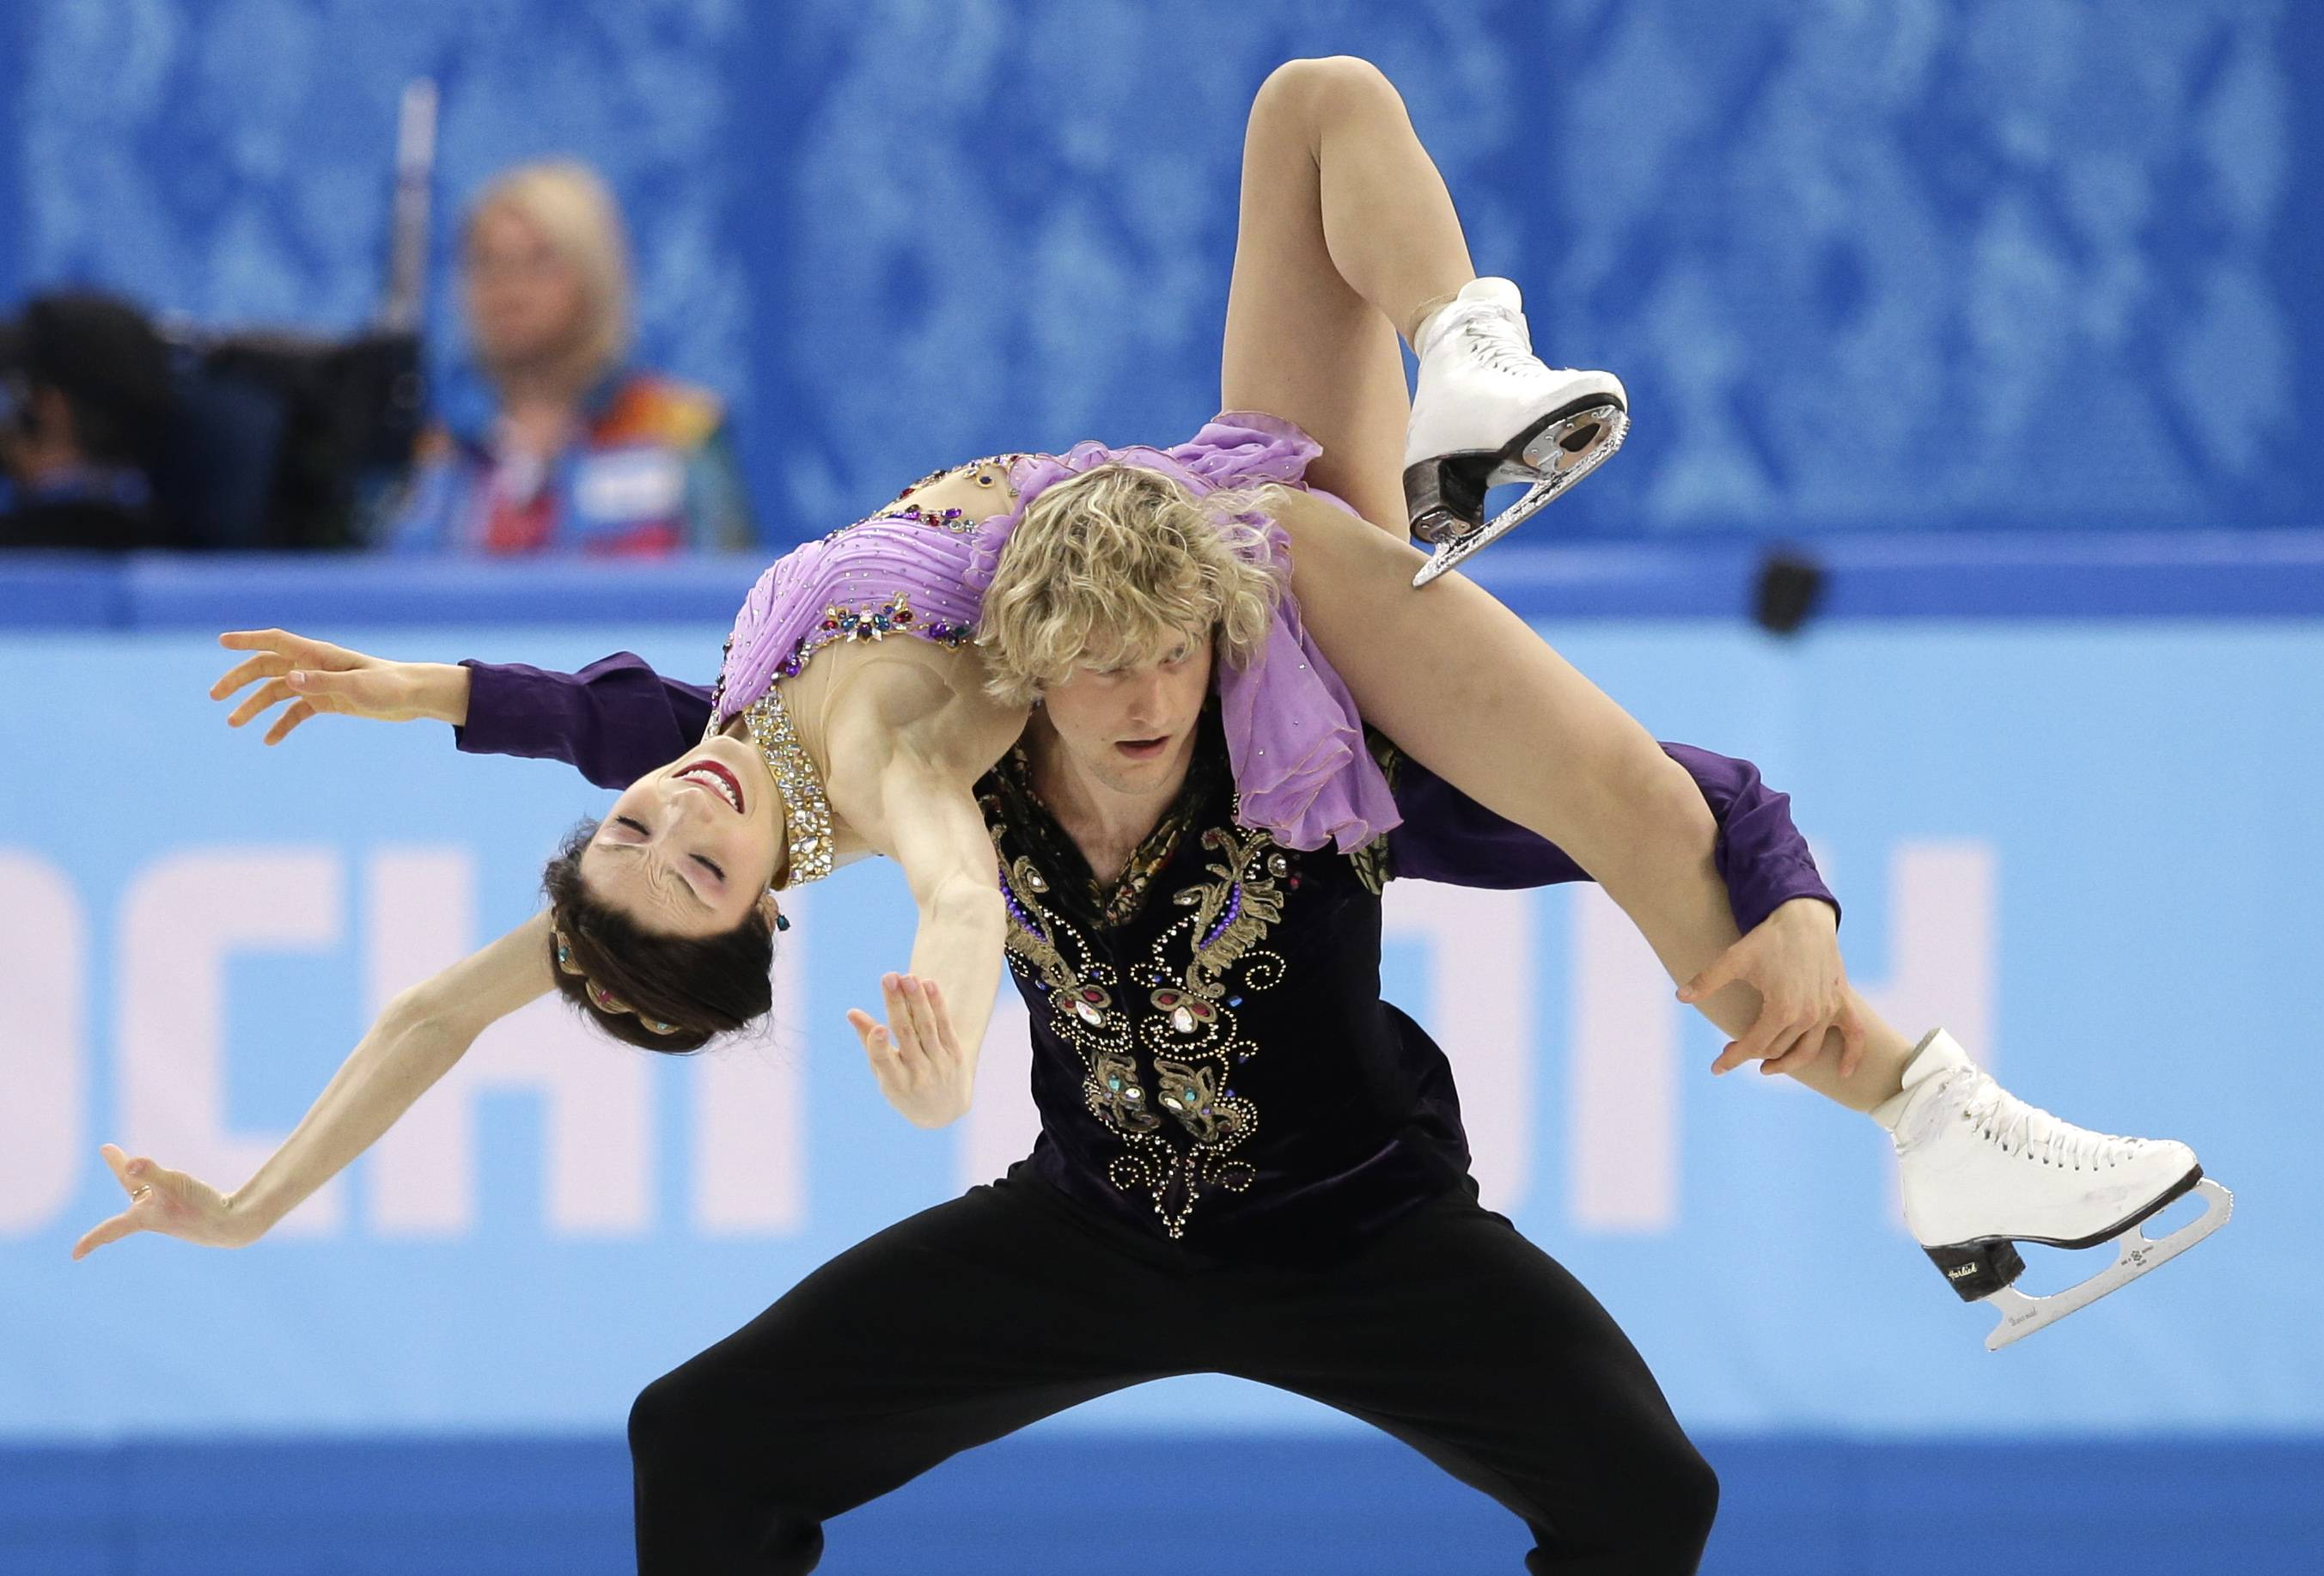 Meryl Davis and Charlie White compete Monday in the ice dance free dance figure skating finals at the Iceberg Skating Palace during the 2014 Winter Olympics in Sochi, Russia.